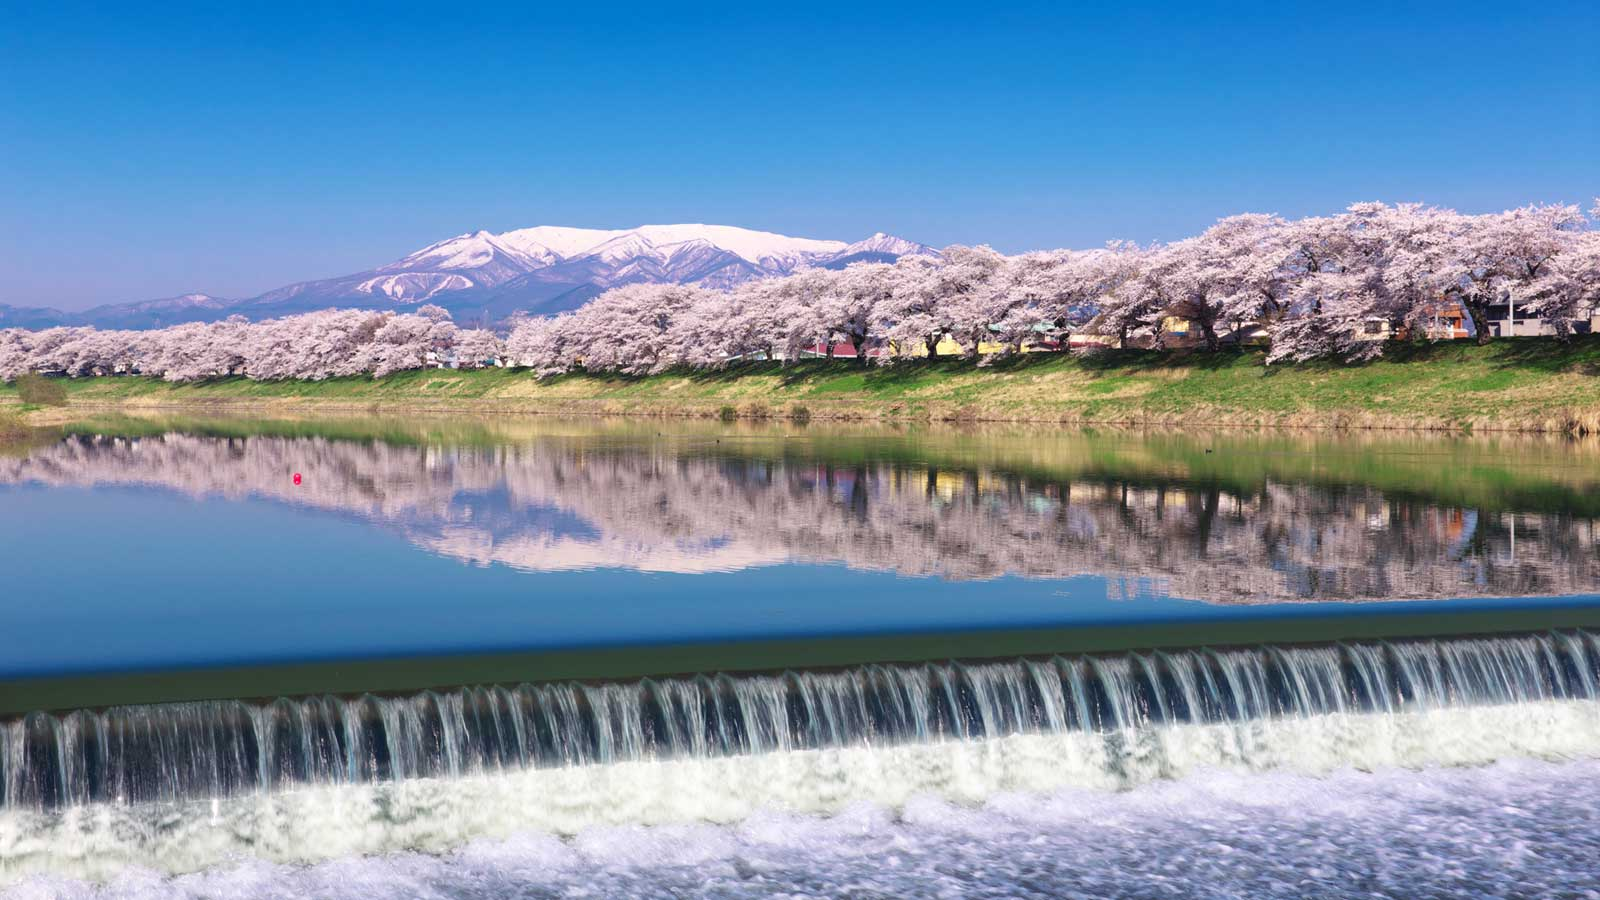 Tohoku Sakura Dream Road: 21 of the Best Cherry Blossom Spots in Northeastern Japan